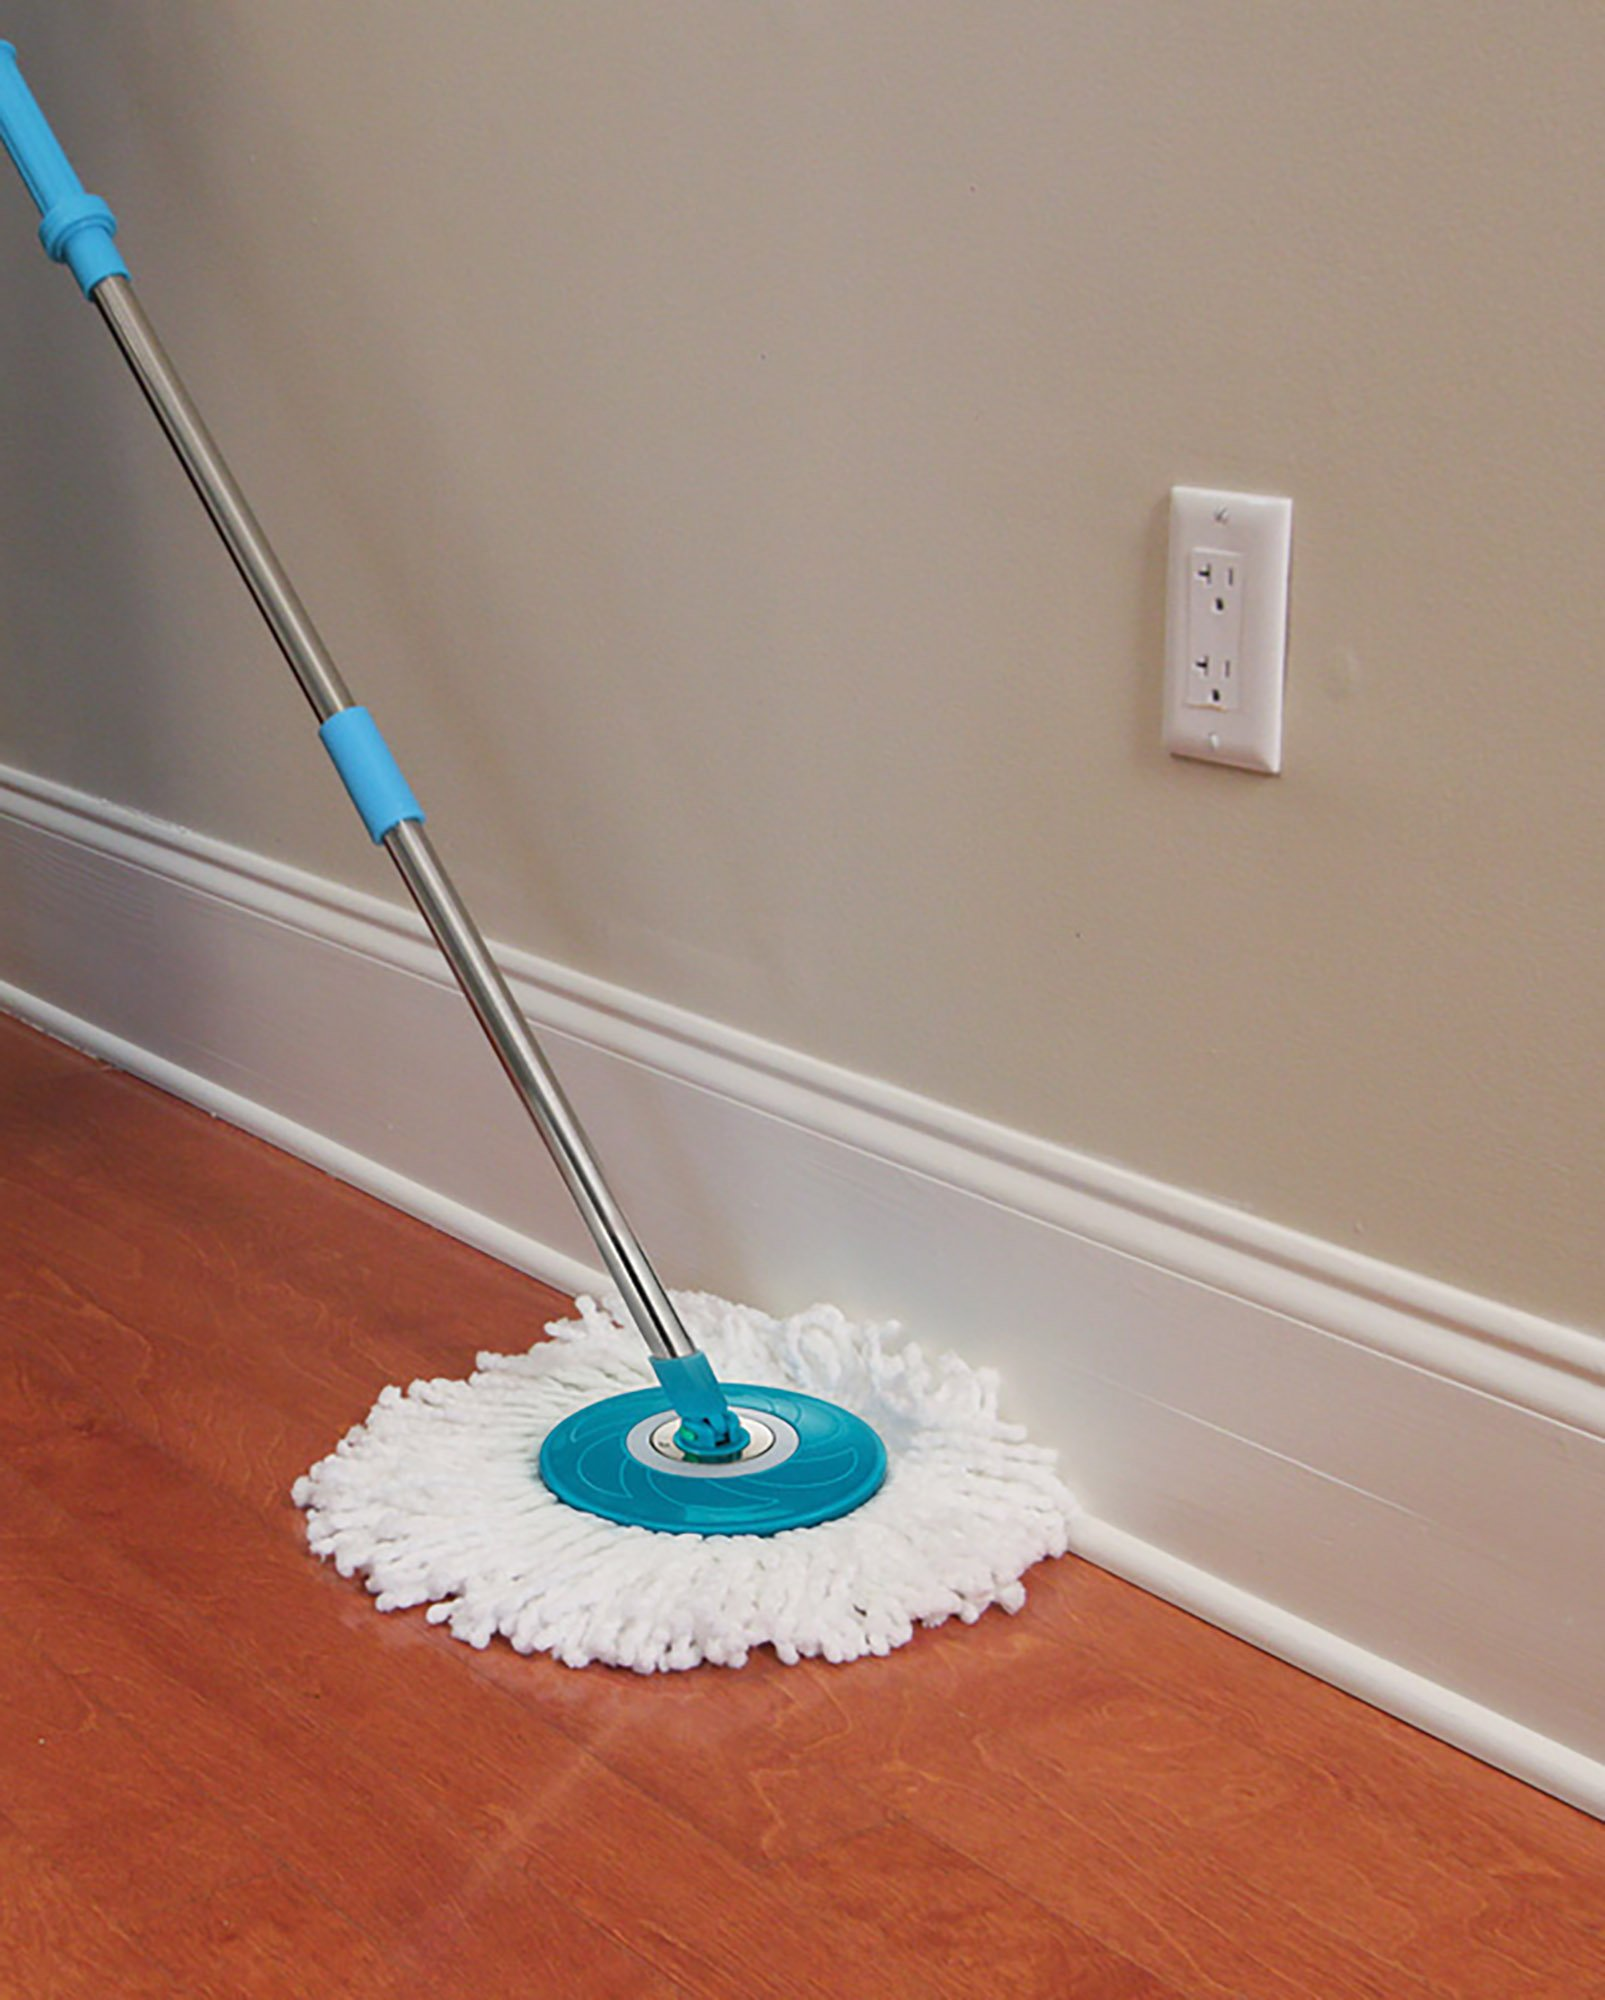 Hurricane Spin Mop Replacement Mop Head by BulbHead by Hurricane (Image #2)